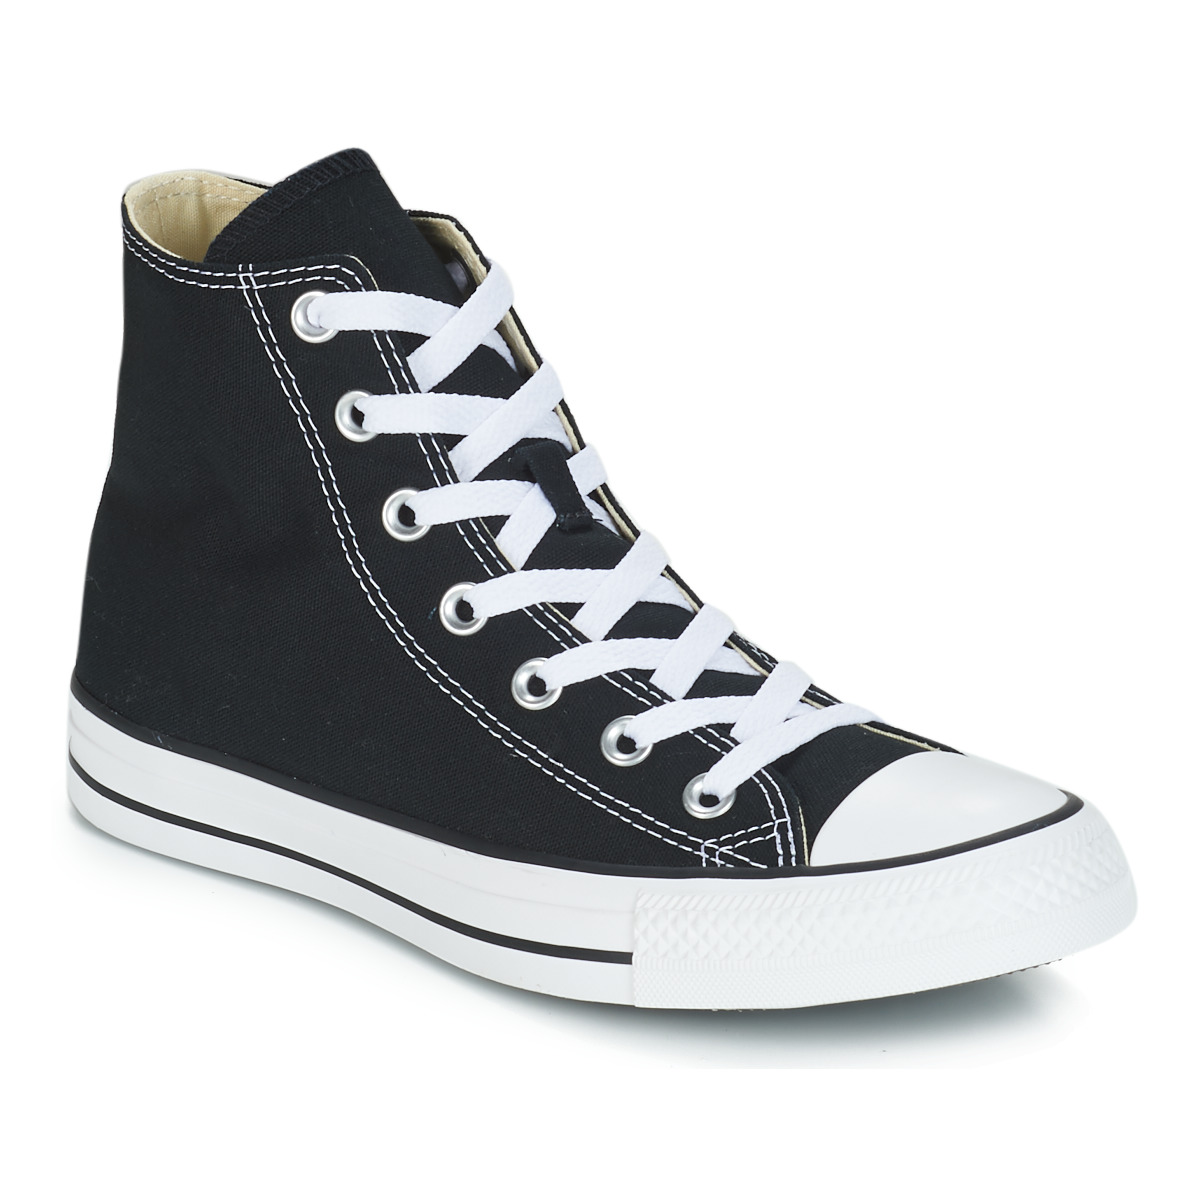 8fb2e85e72ba1 Chaussures Baskets montantes Converse CHUCK TAYLOR ALL STAR CORE HI Noir